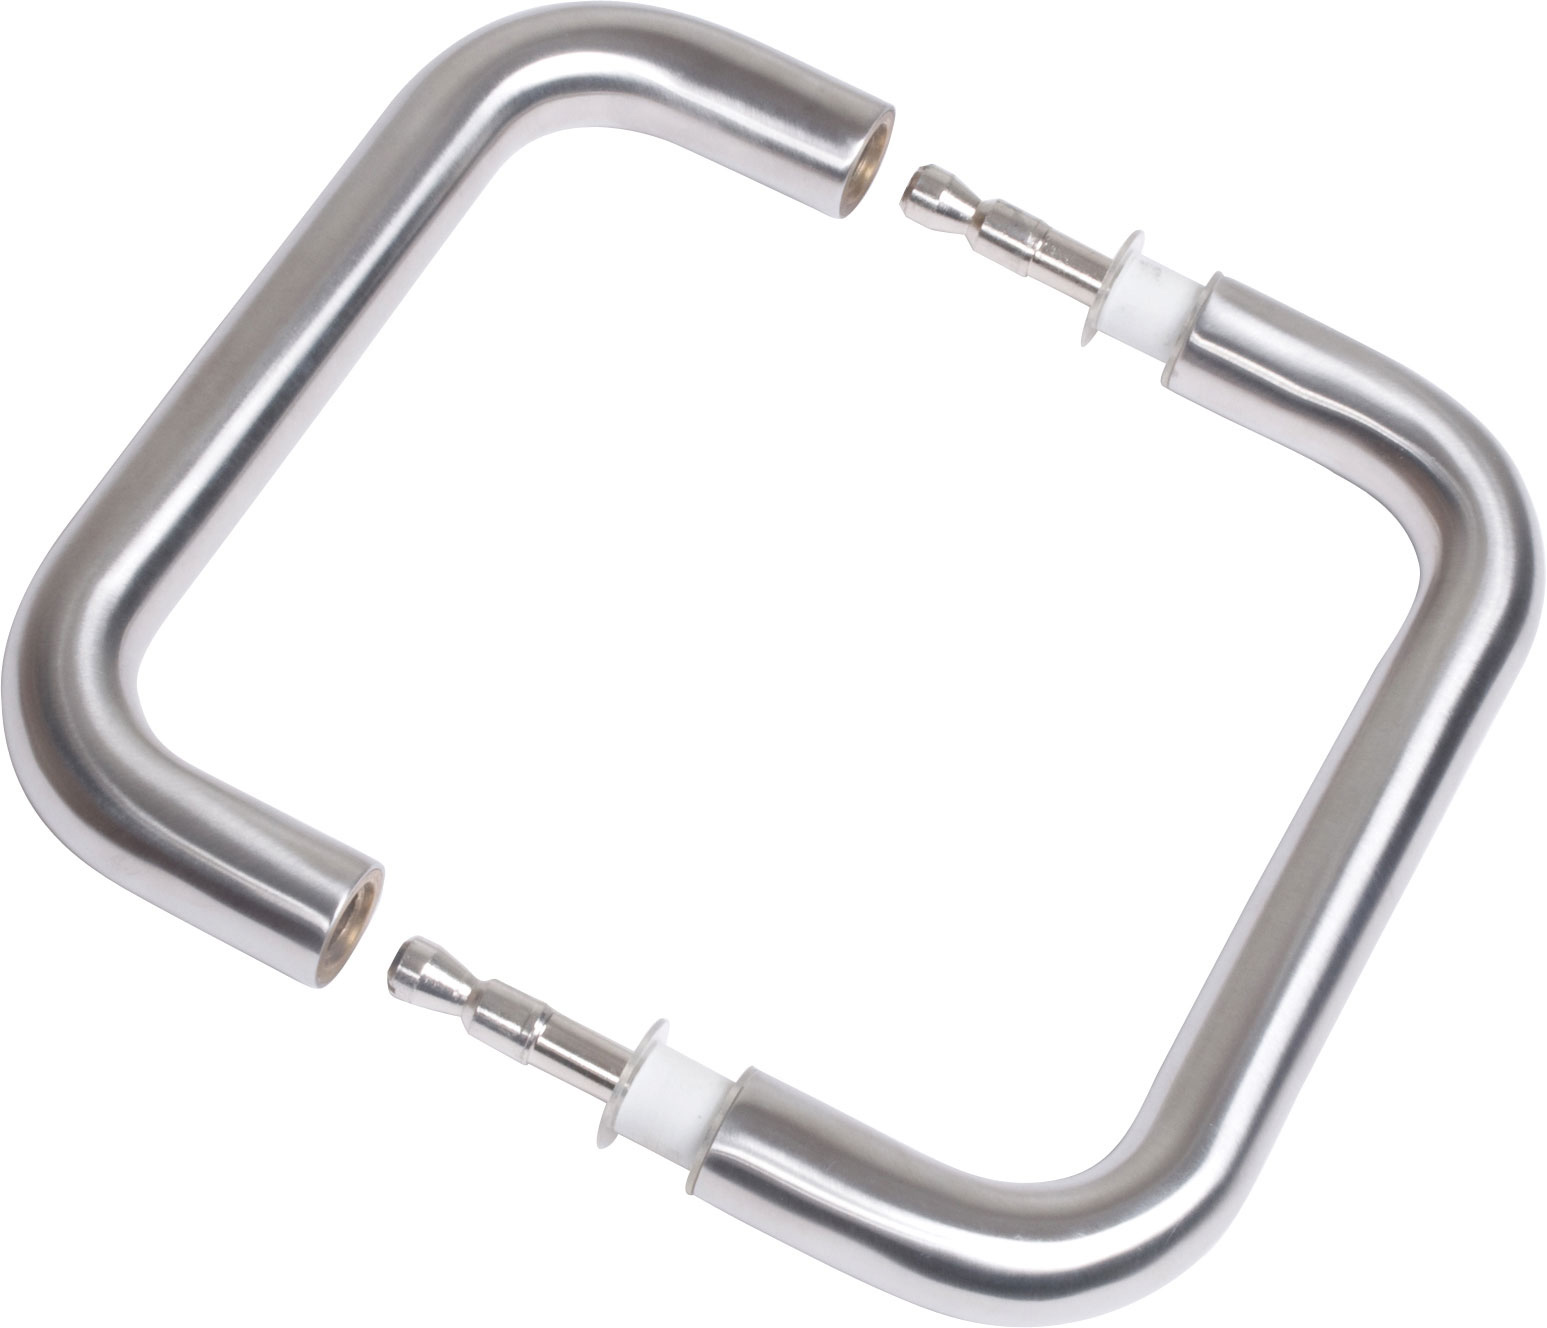 Beau Stainless Steel Back To Back Fixing Handles